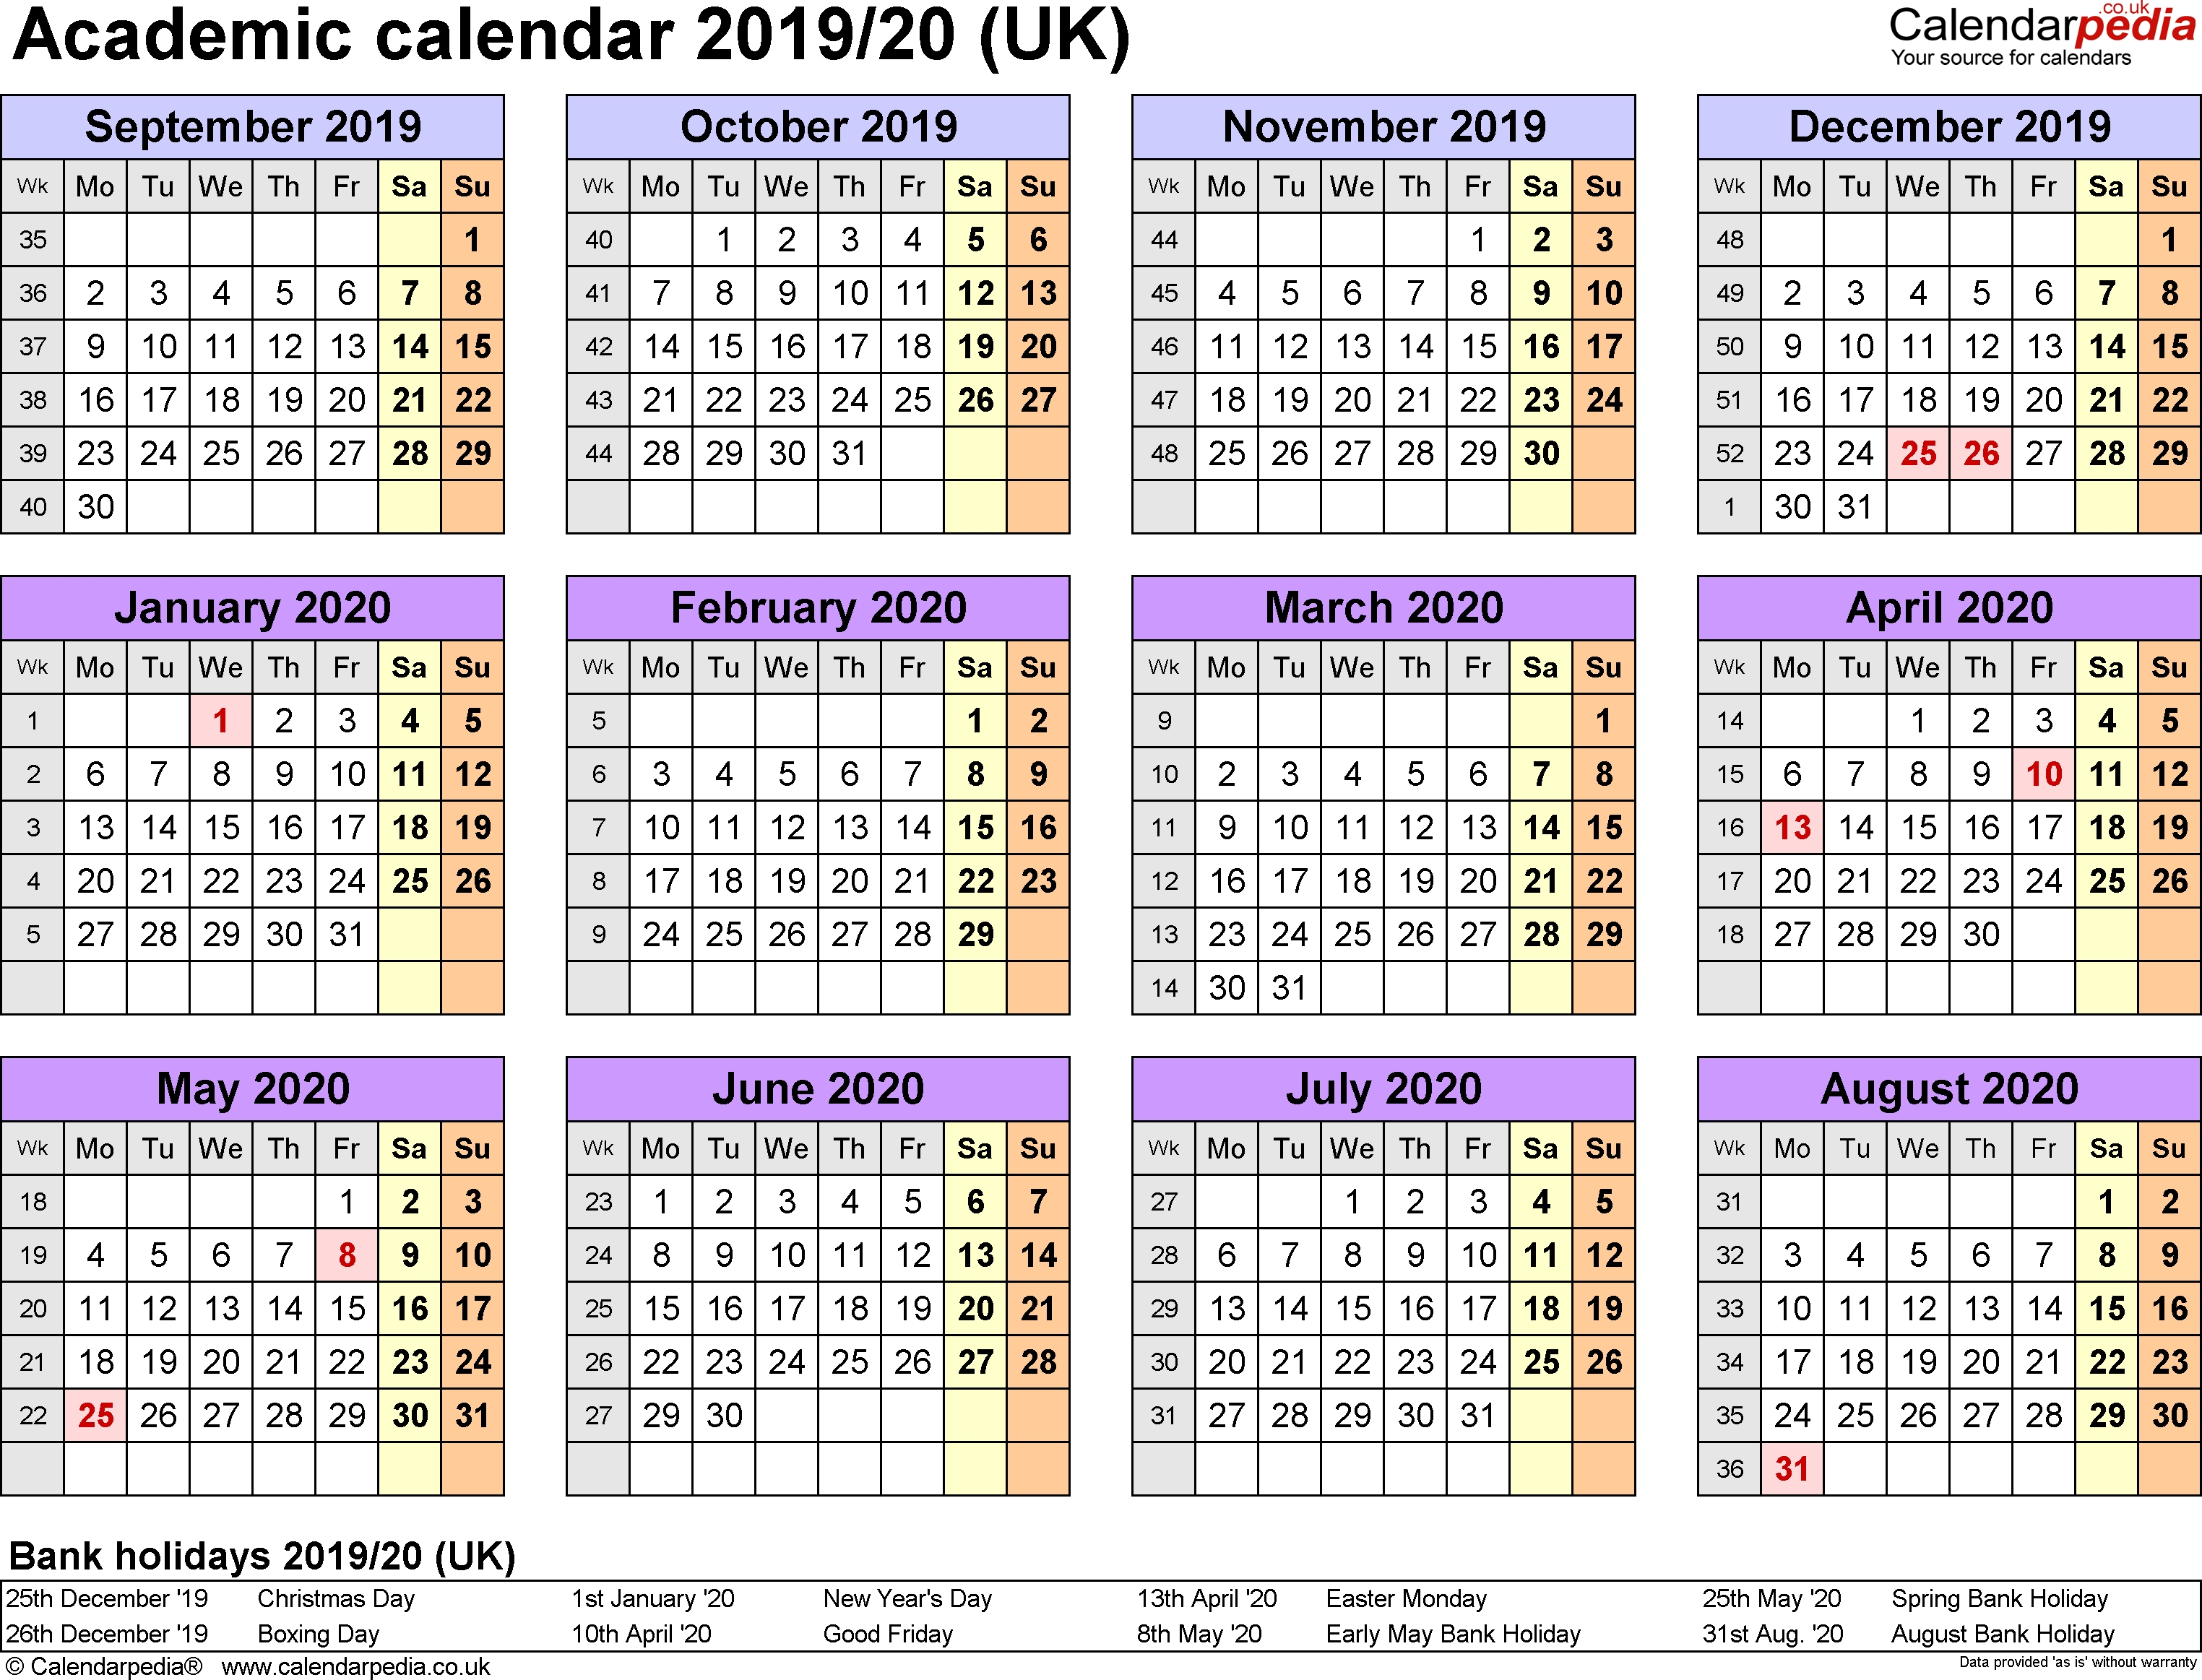 Academic Calendars 2019/2020 As Free Printable Word Templates-2020 Printable Calendar Templates Uk